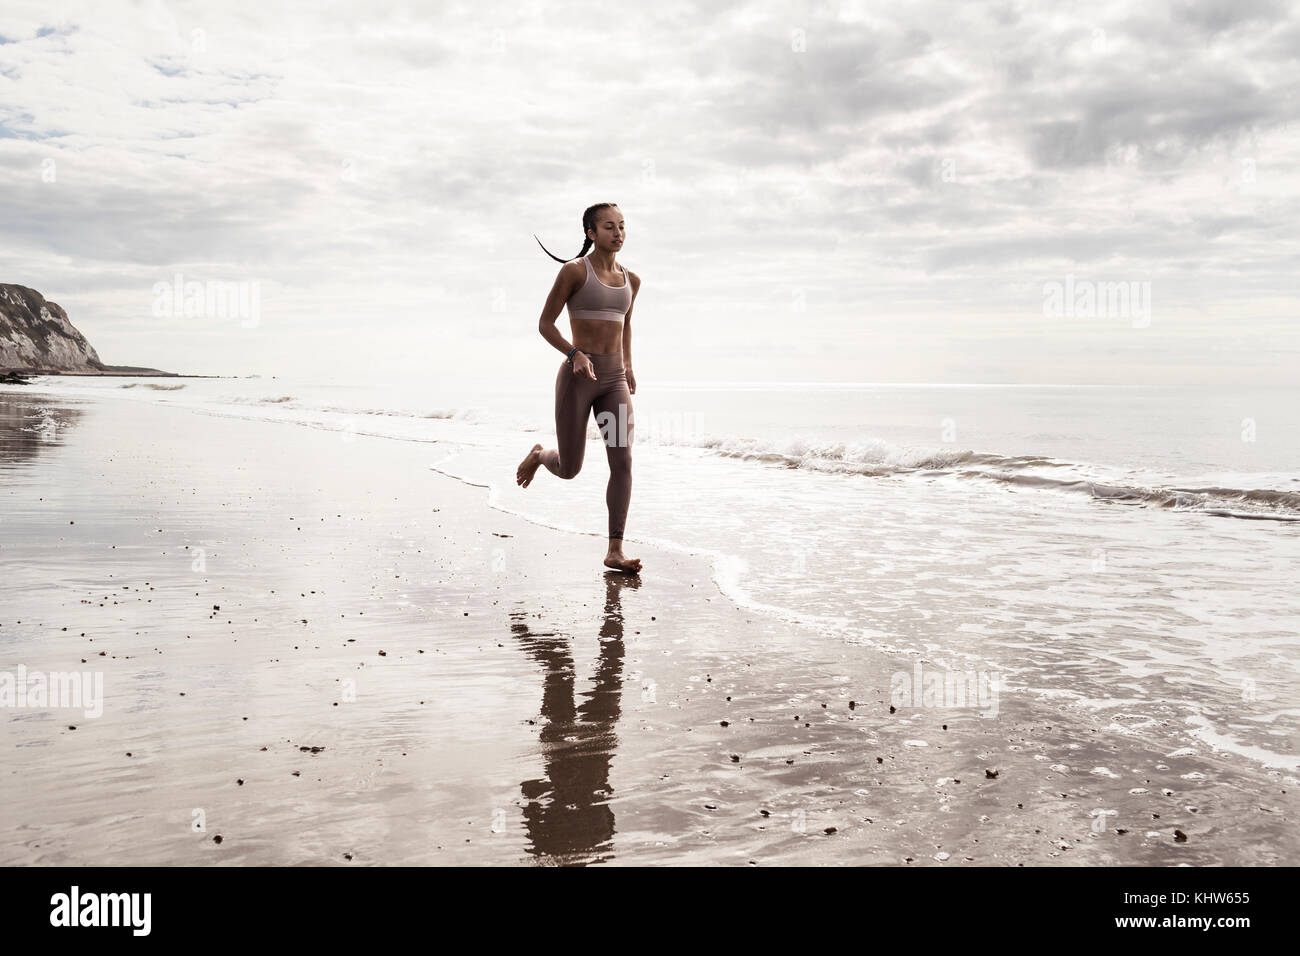 Young female runner running barefoot along water's edge at beach - Stock Image